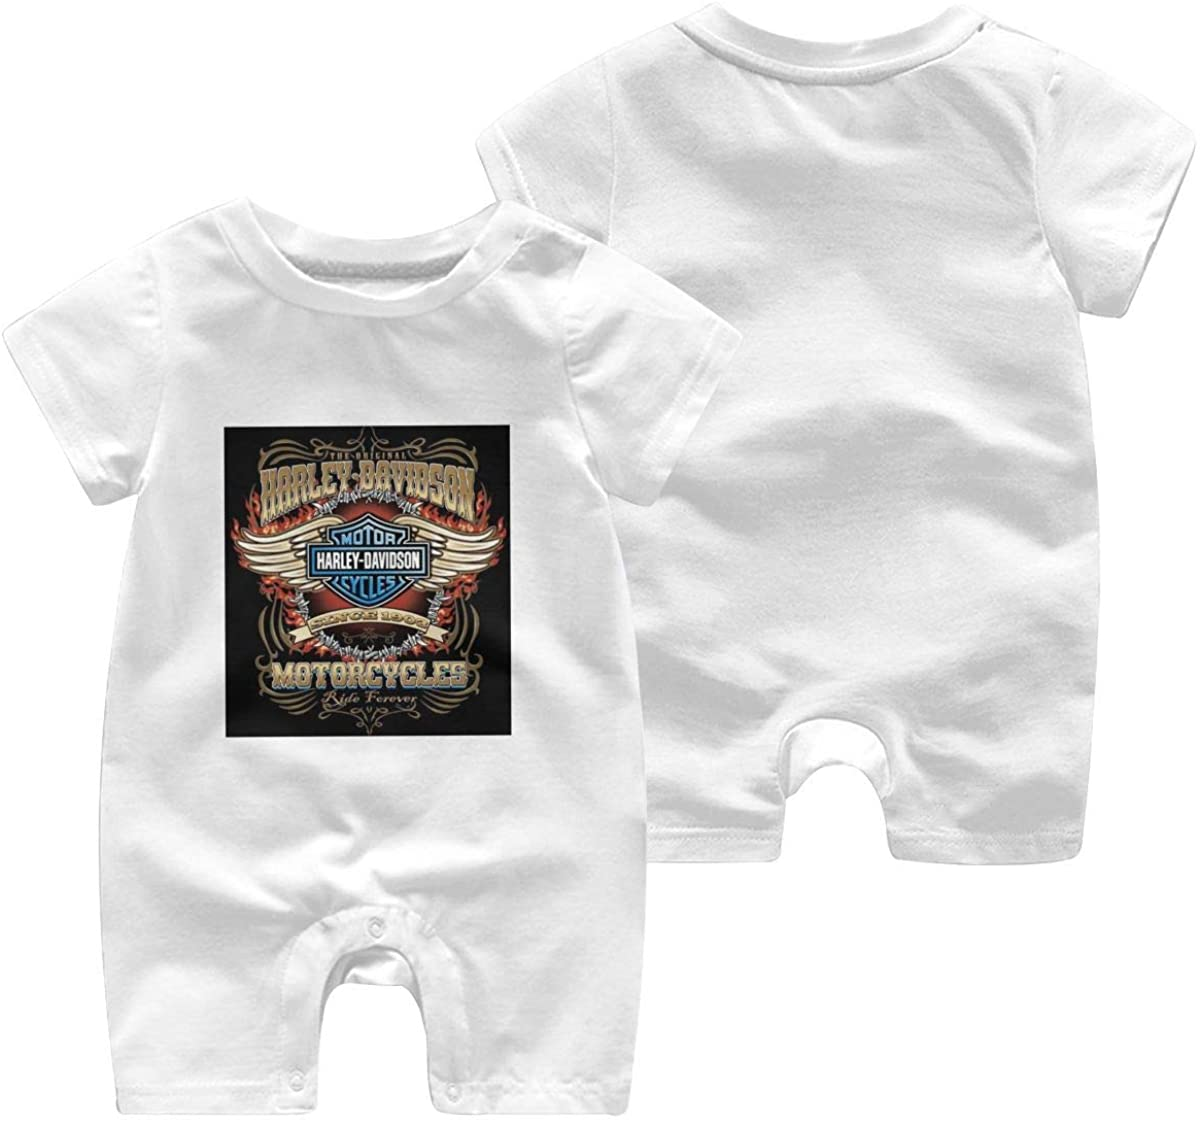 Harley Davidson One Piece Outfits Baby Solid Color Rompers with Button Kids Short Sleeve Playsuit Jumpsuits Cotton Clothing 2t White